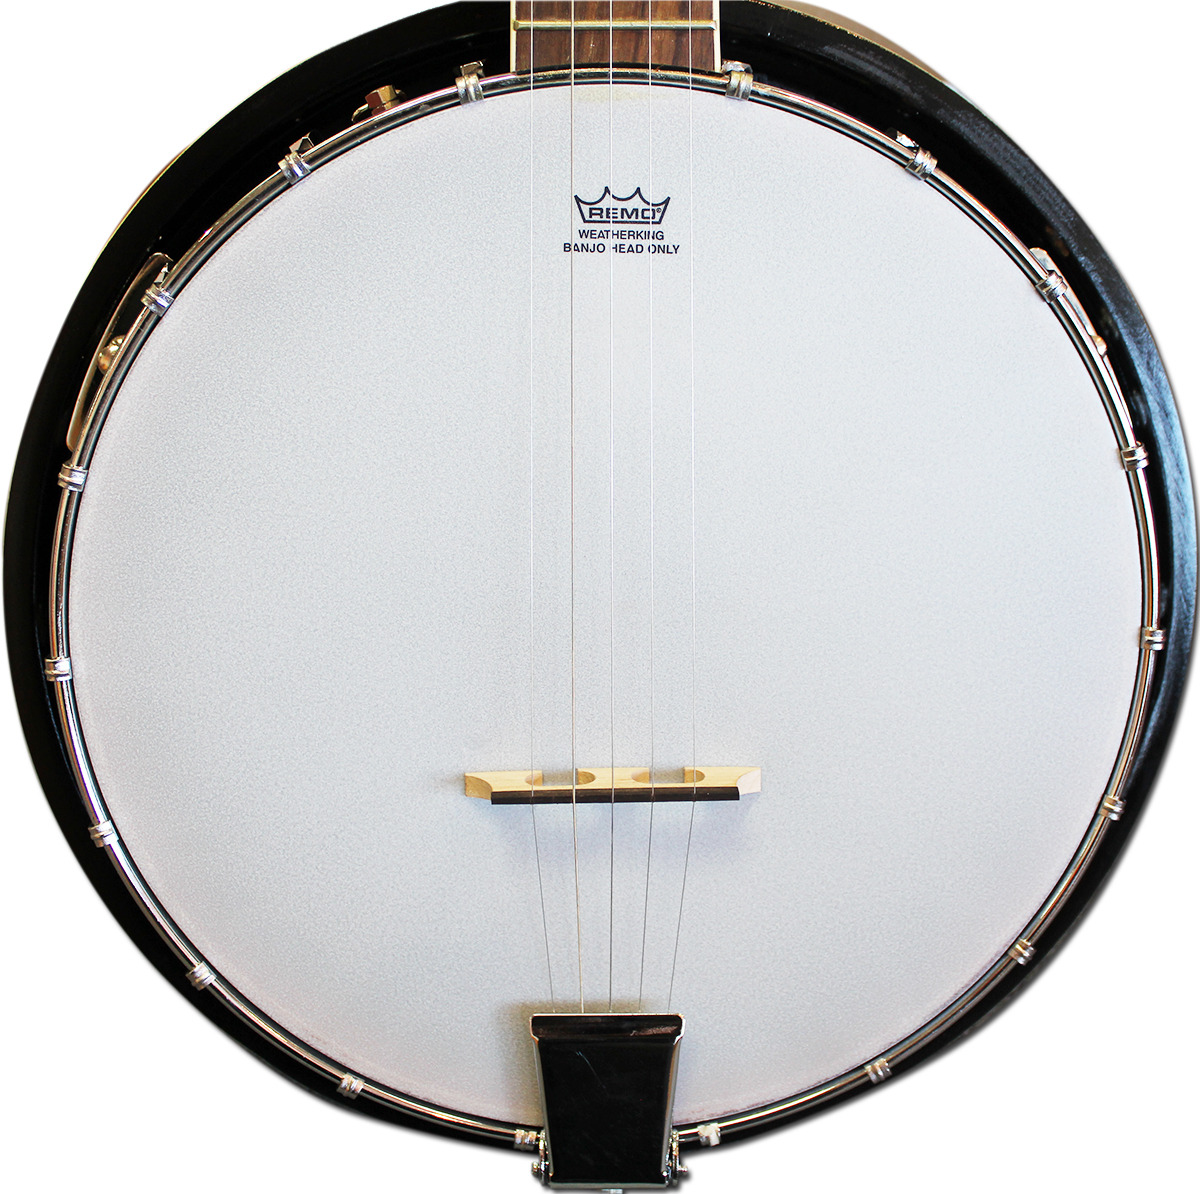 Best Beginner Banjo for Sale Australia